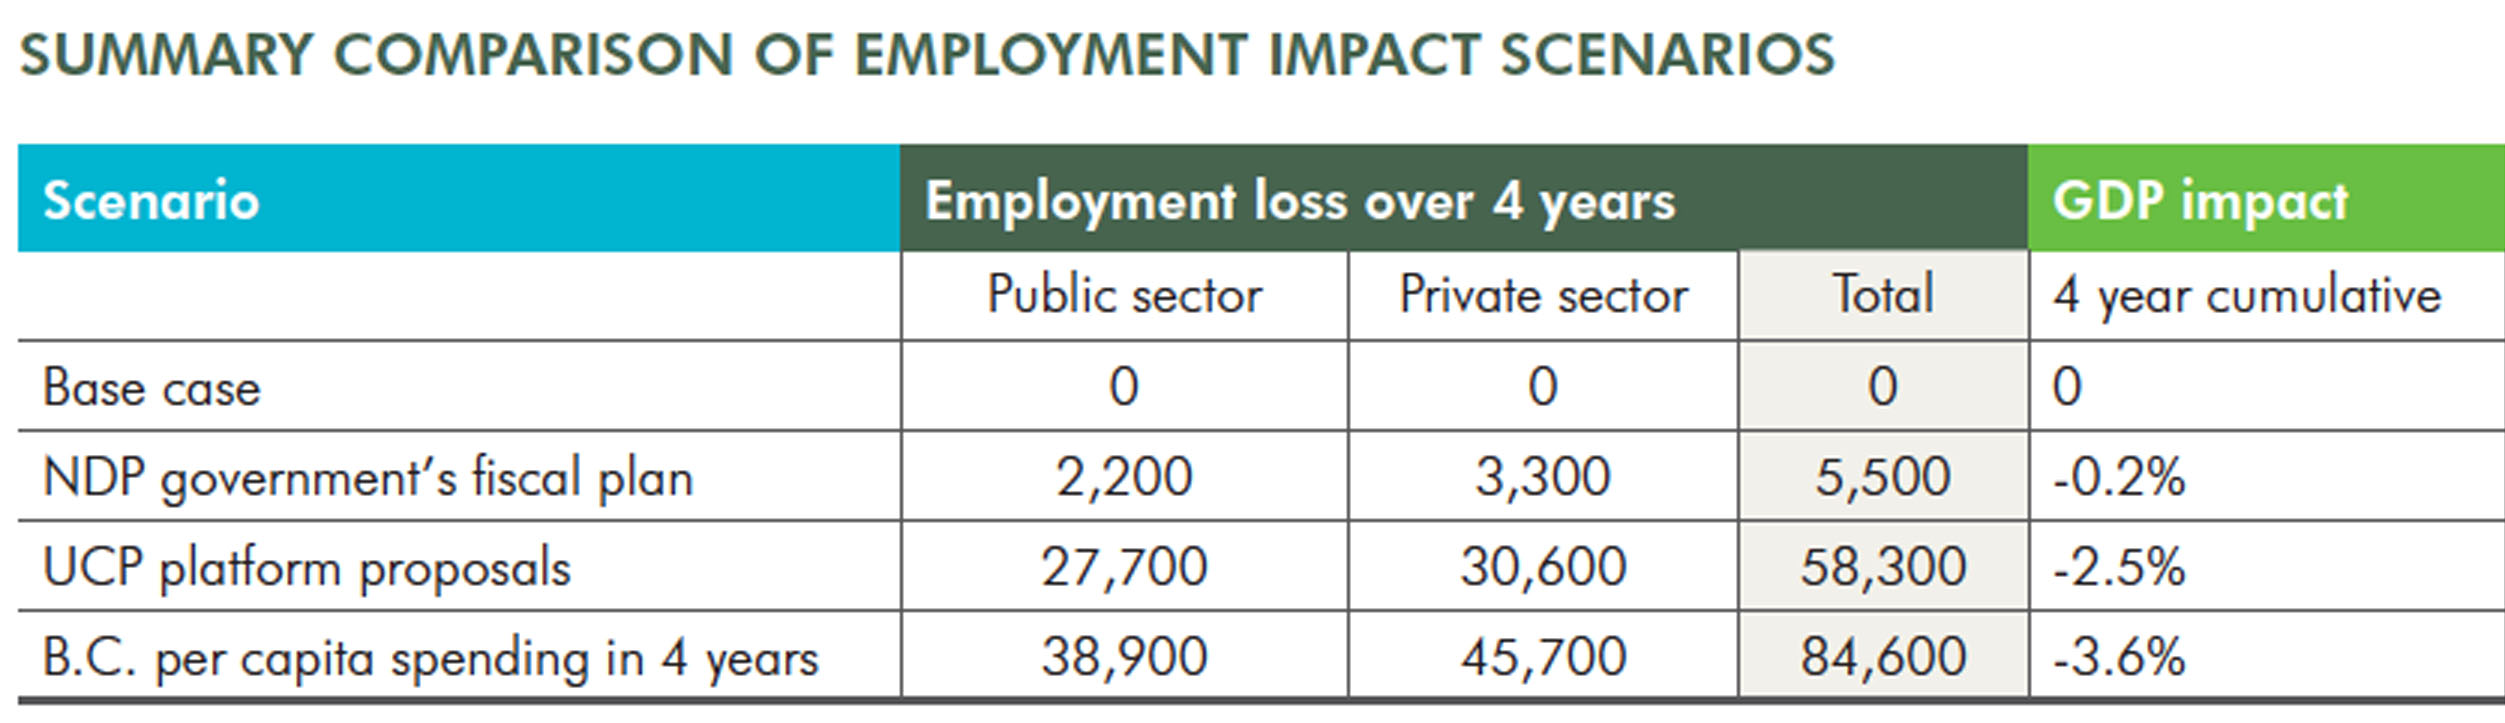 Summary Comparison of Employment Impact Scenarios